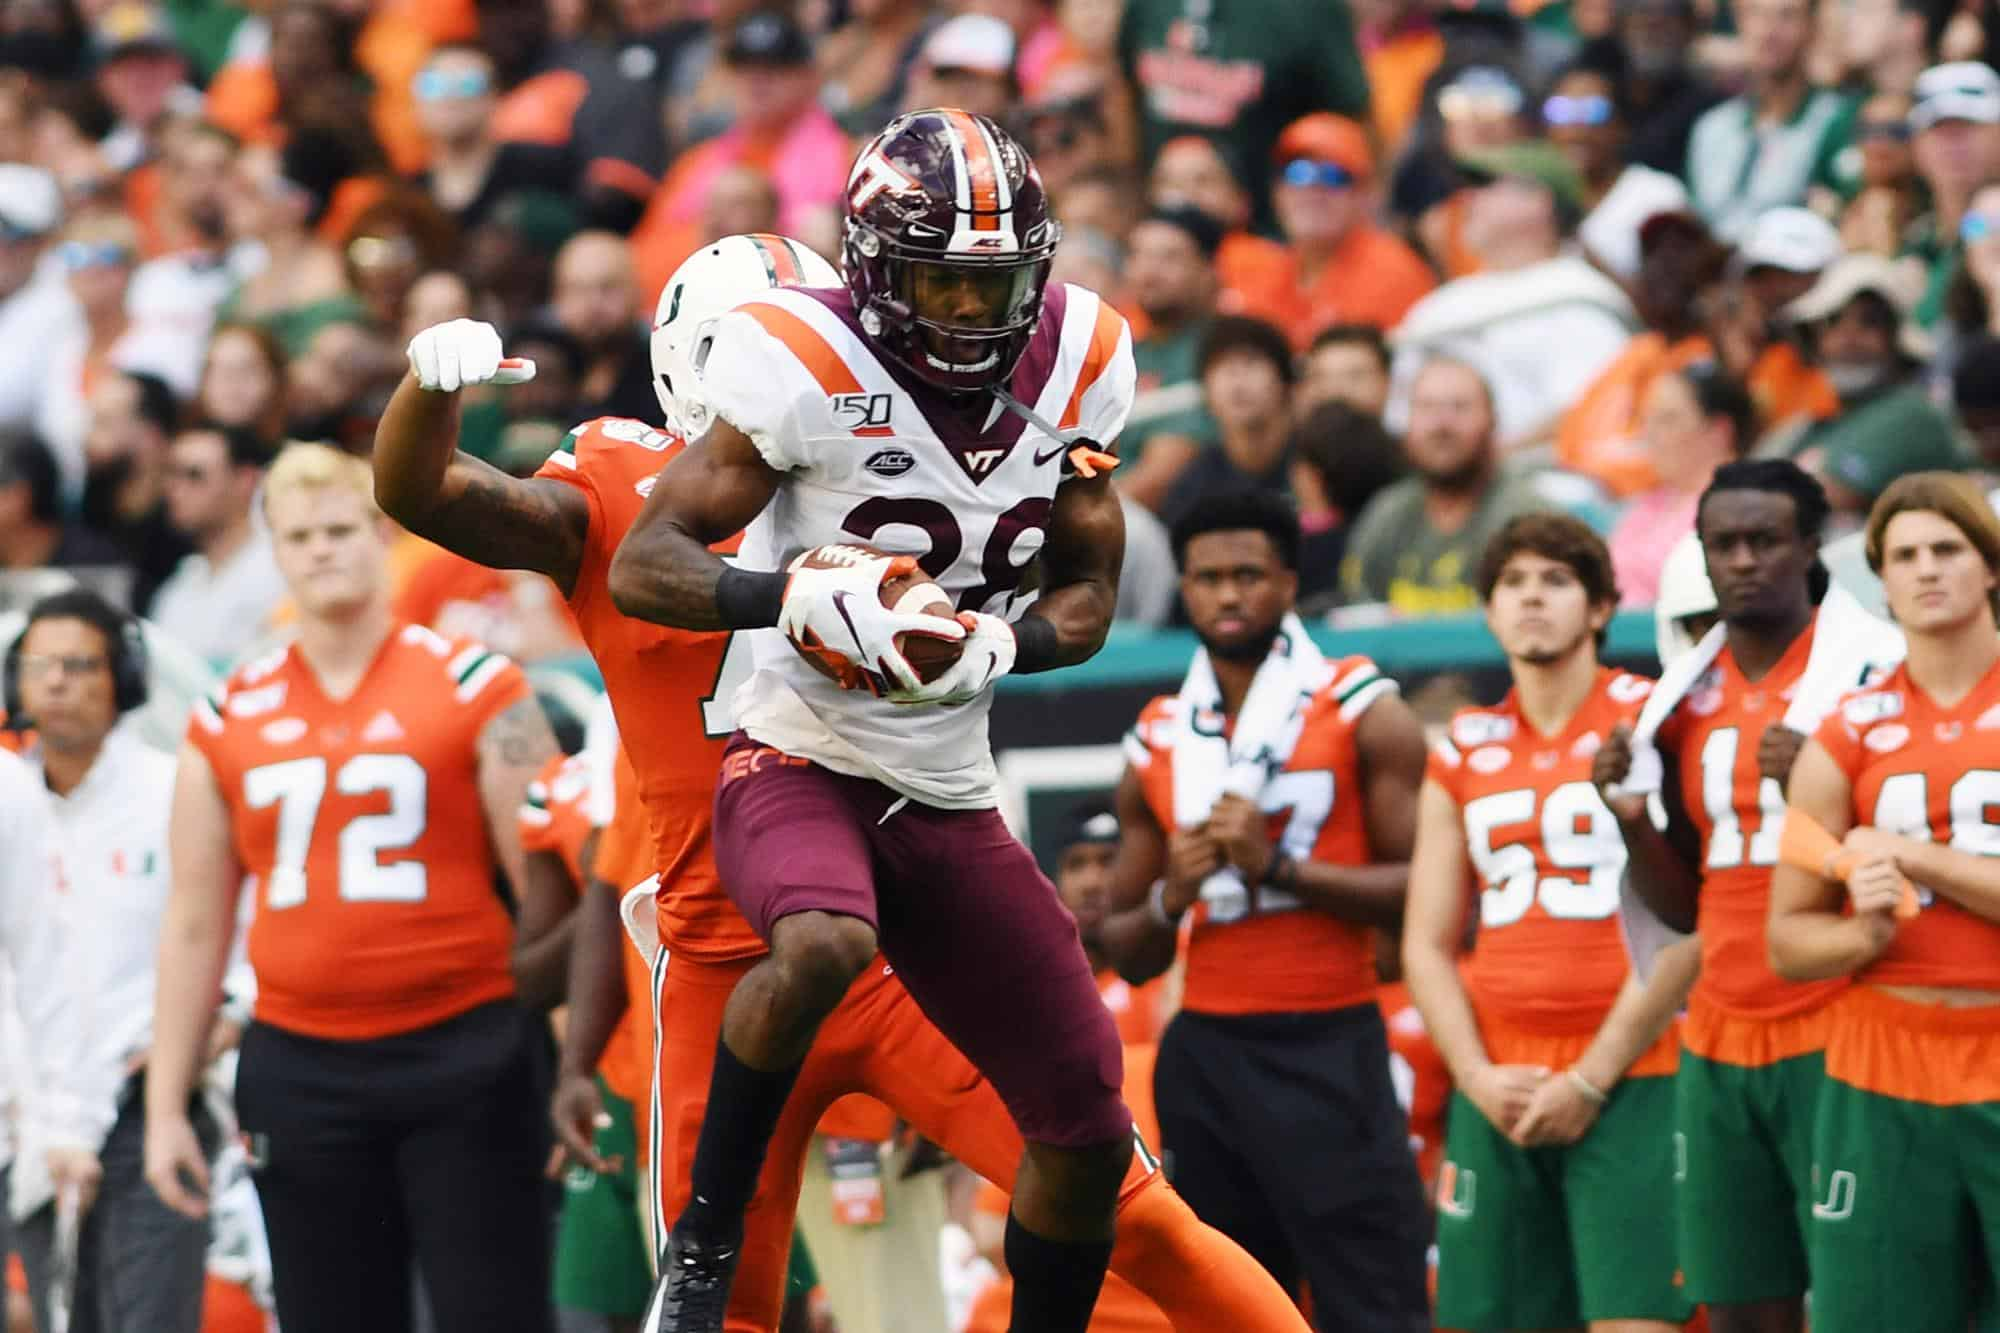 Virginia Tech cornerback Jermaine Waller has the potential to rise